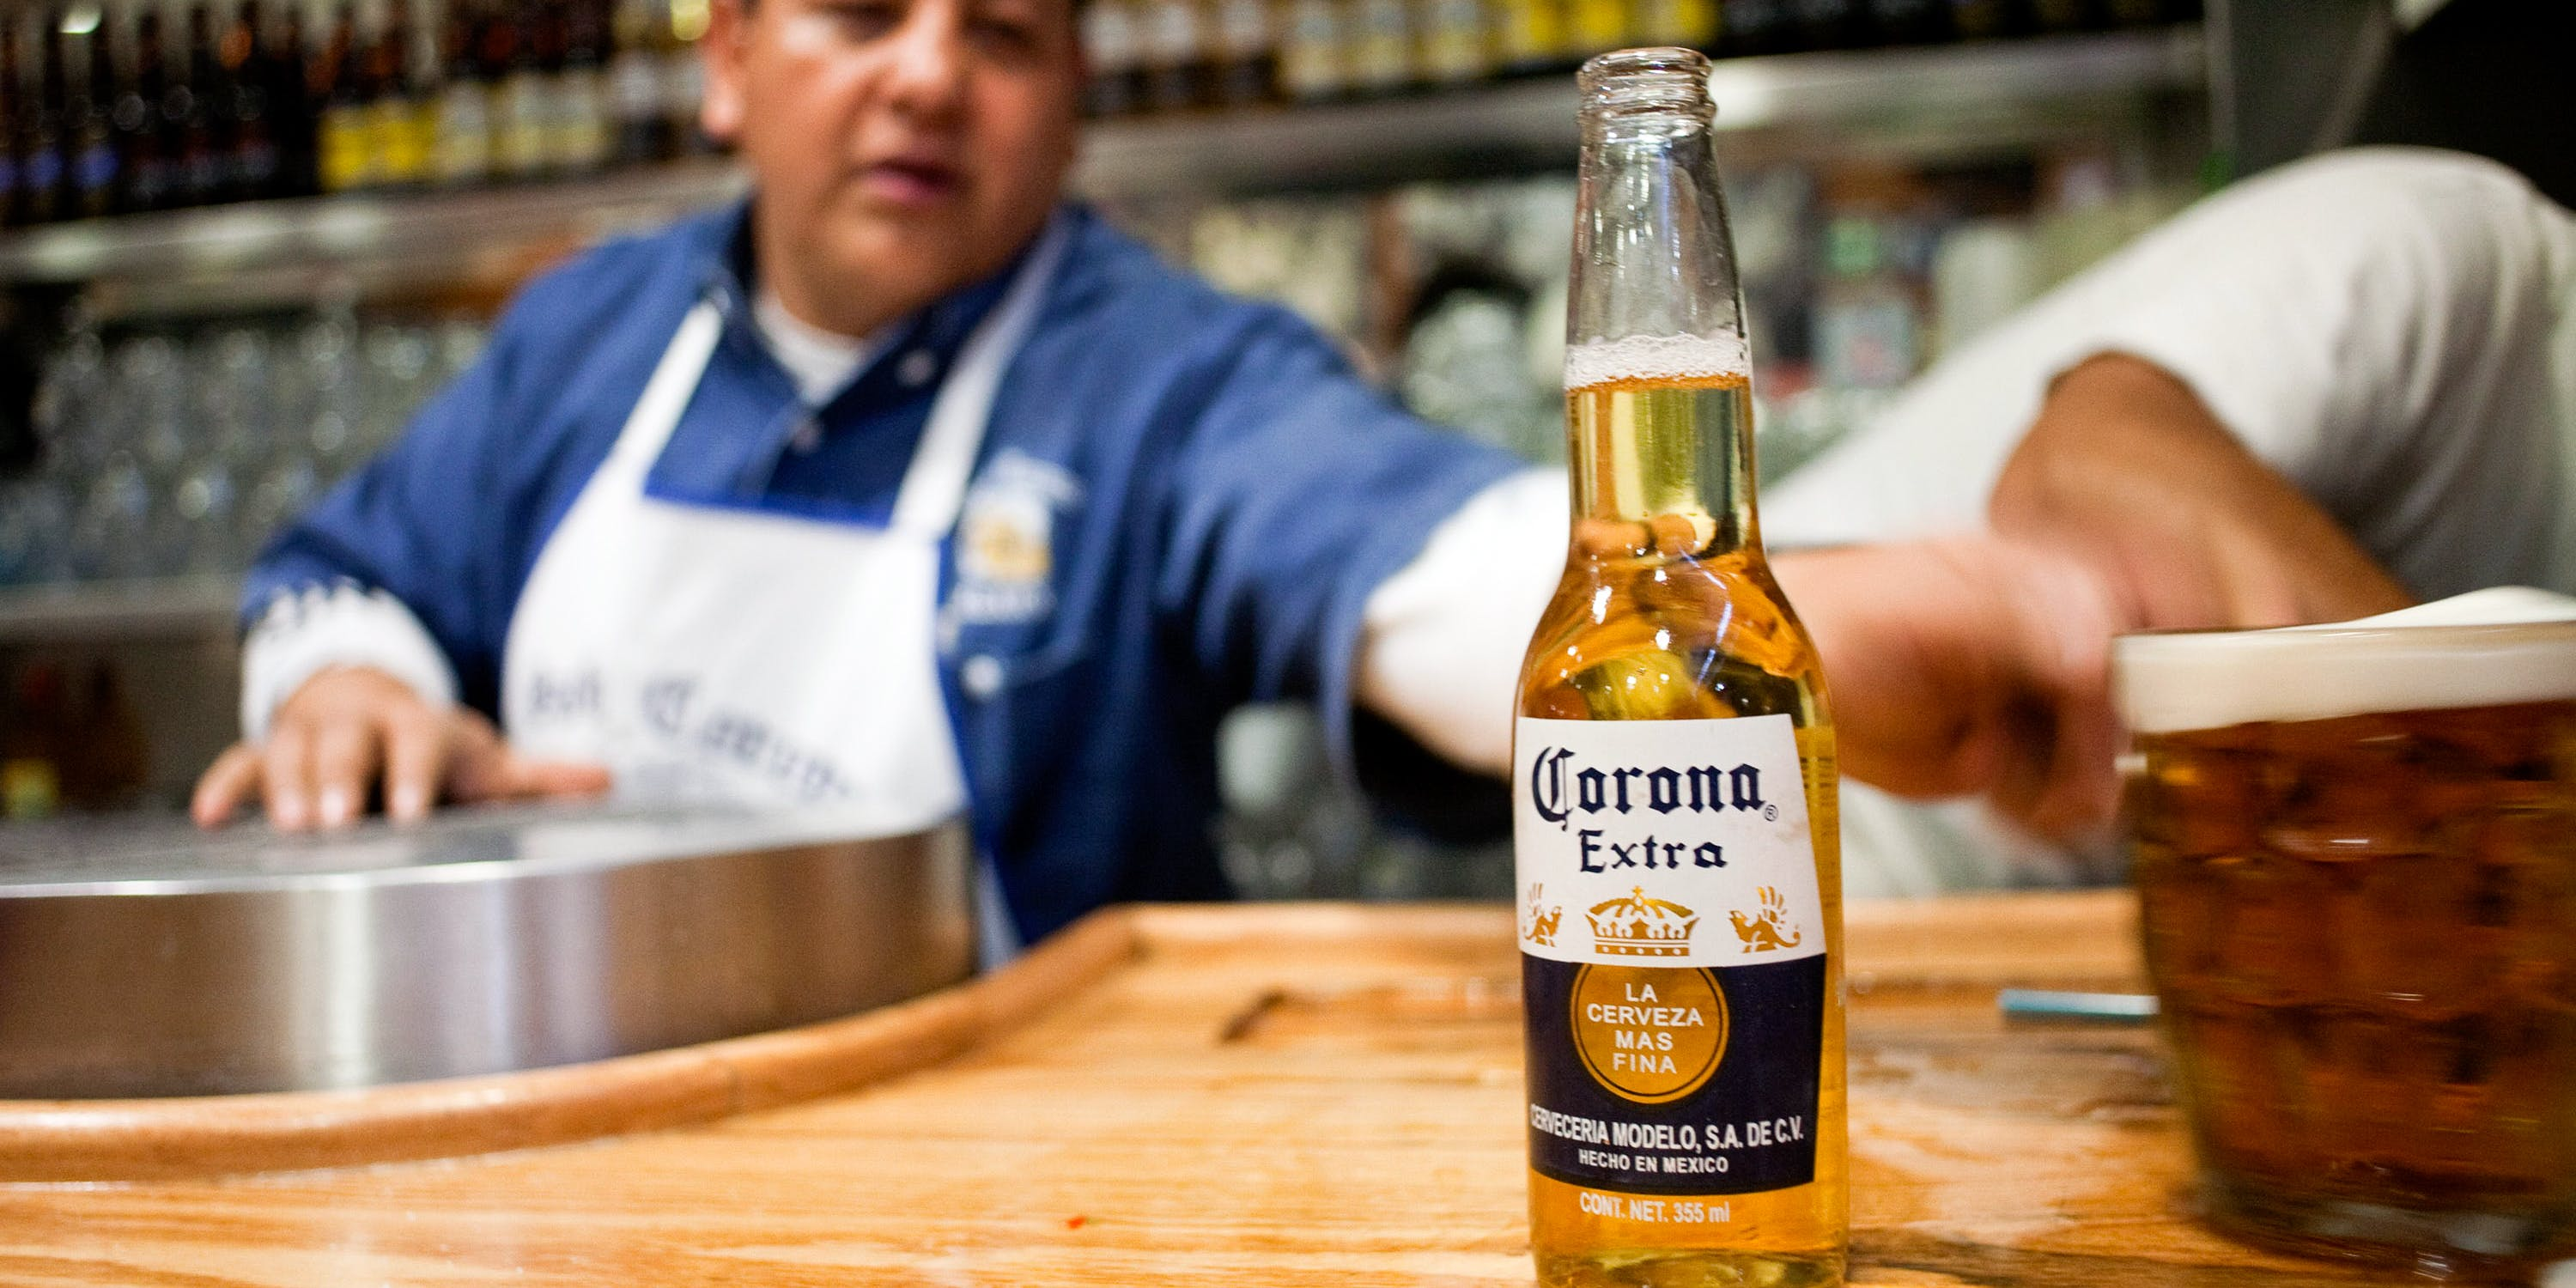 Constellation Brands of Corona, Modelo To Make Cannabis Beverages